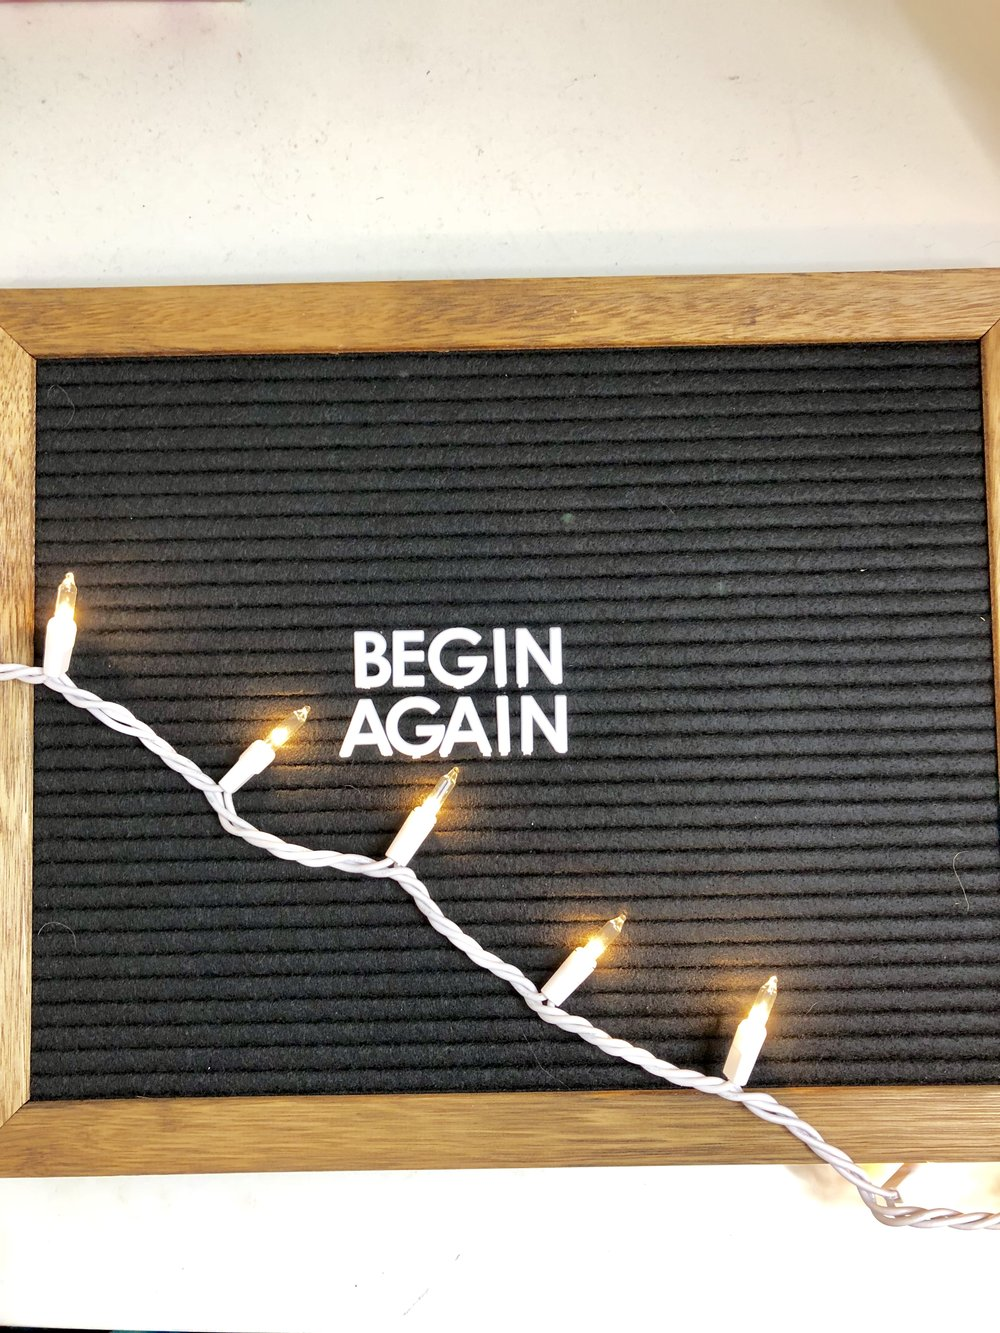 letter board ideas, letter board design, inspirational quotes, letter board quotes